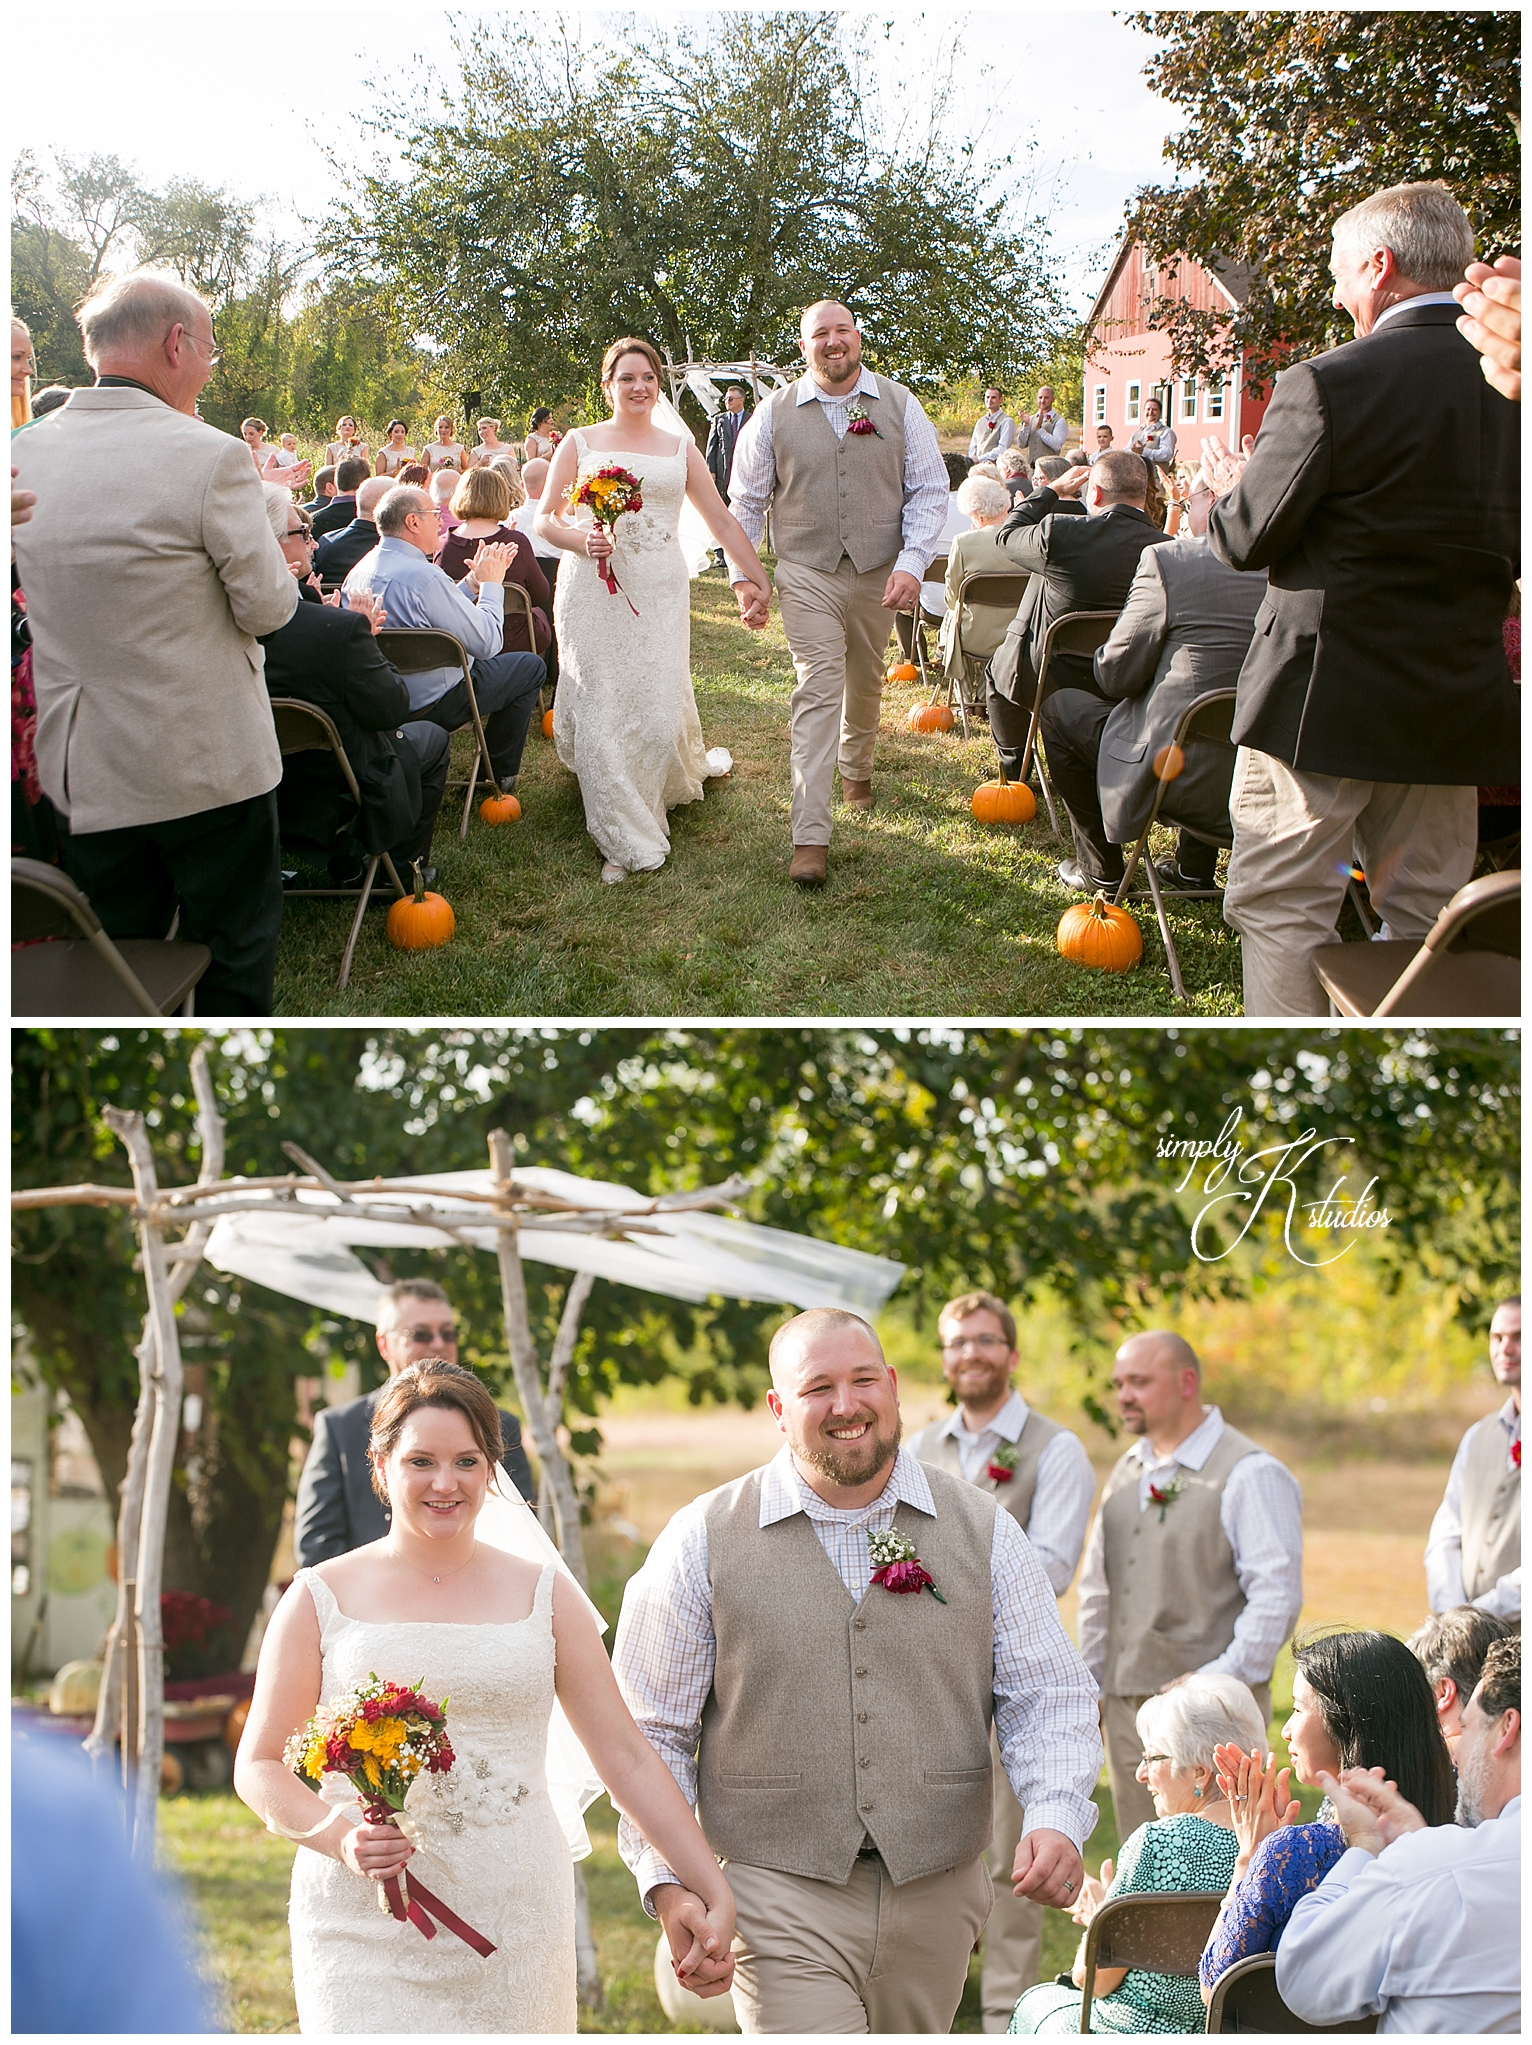 Wedding Ceremony at Vitos on the Farm.jpg